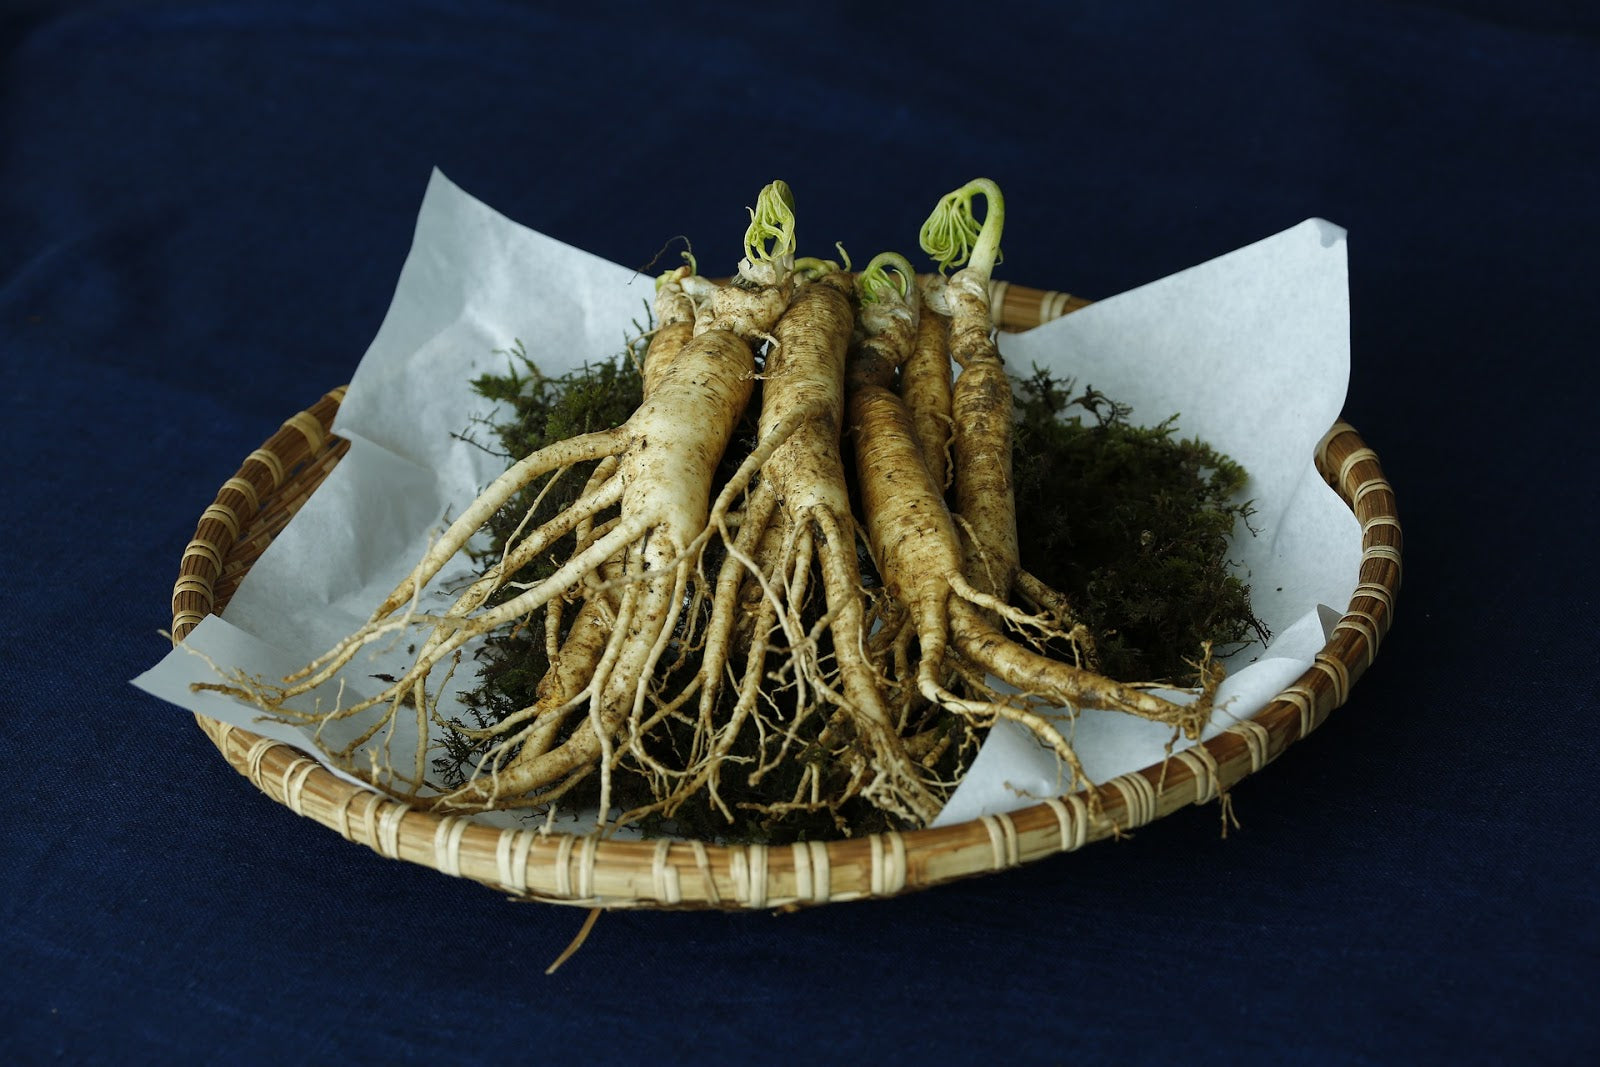 Menopause supplements: ginseng